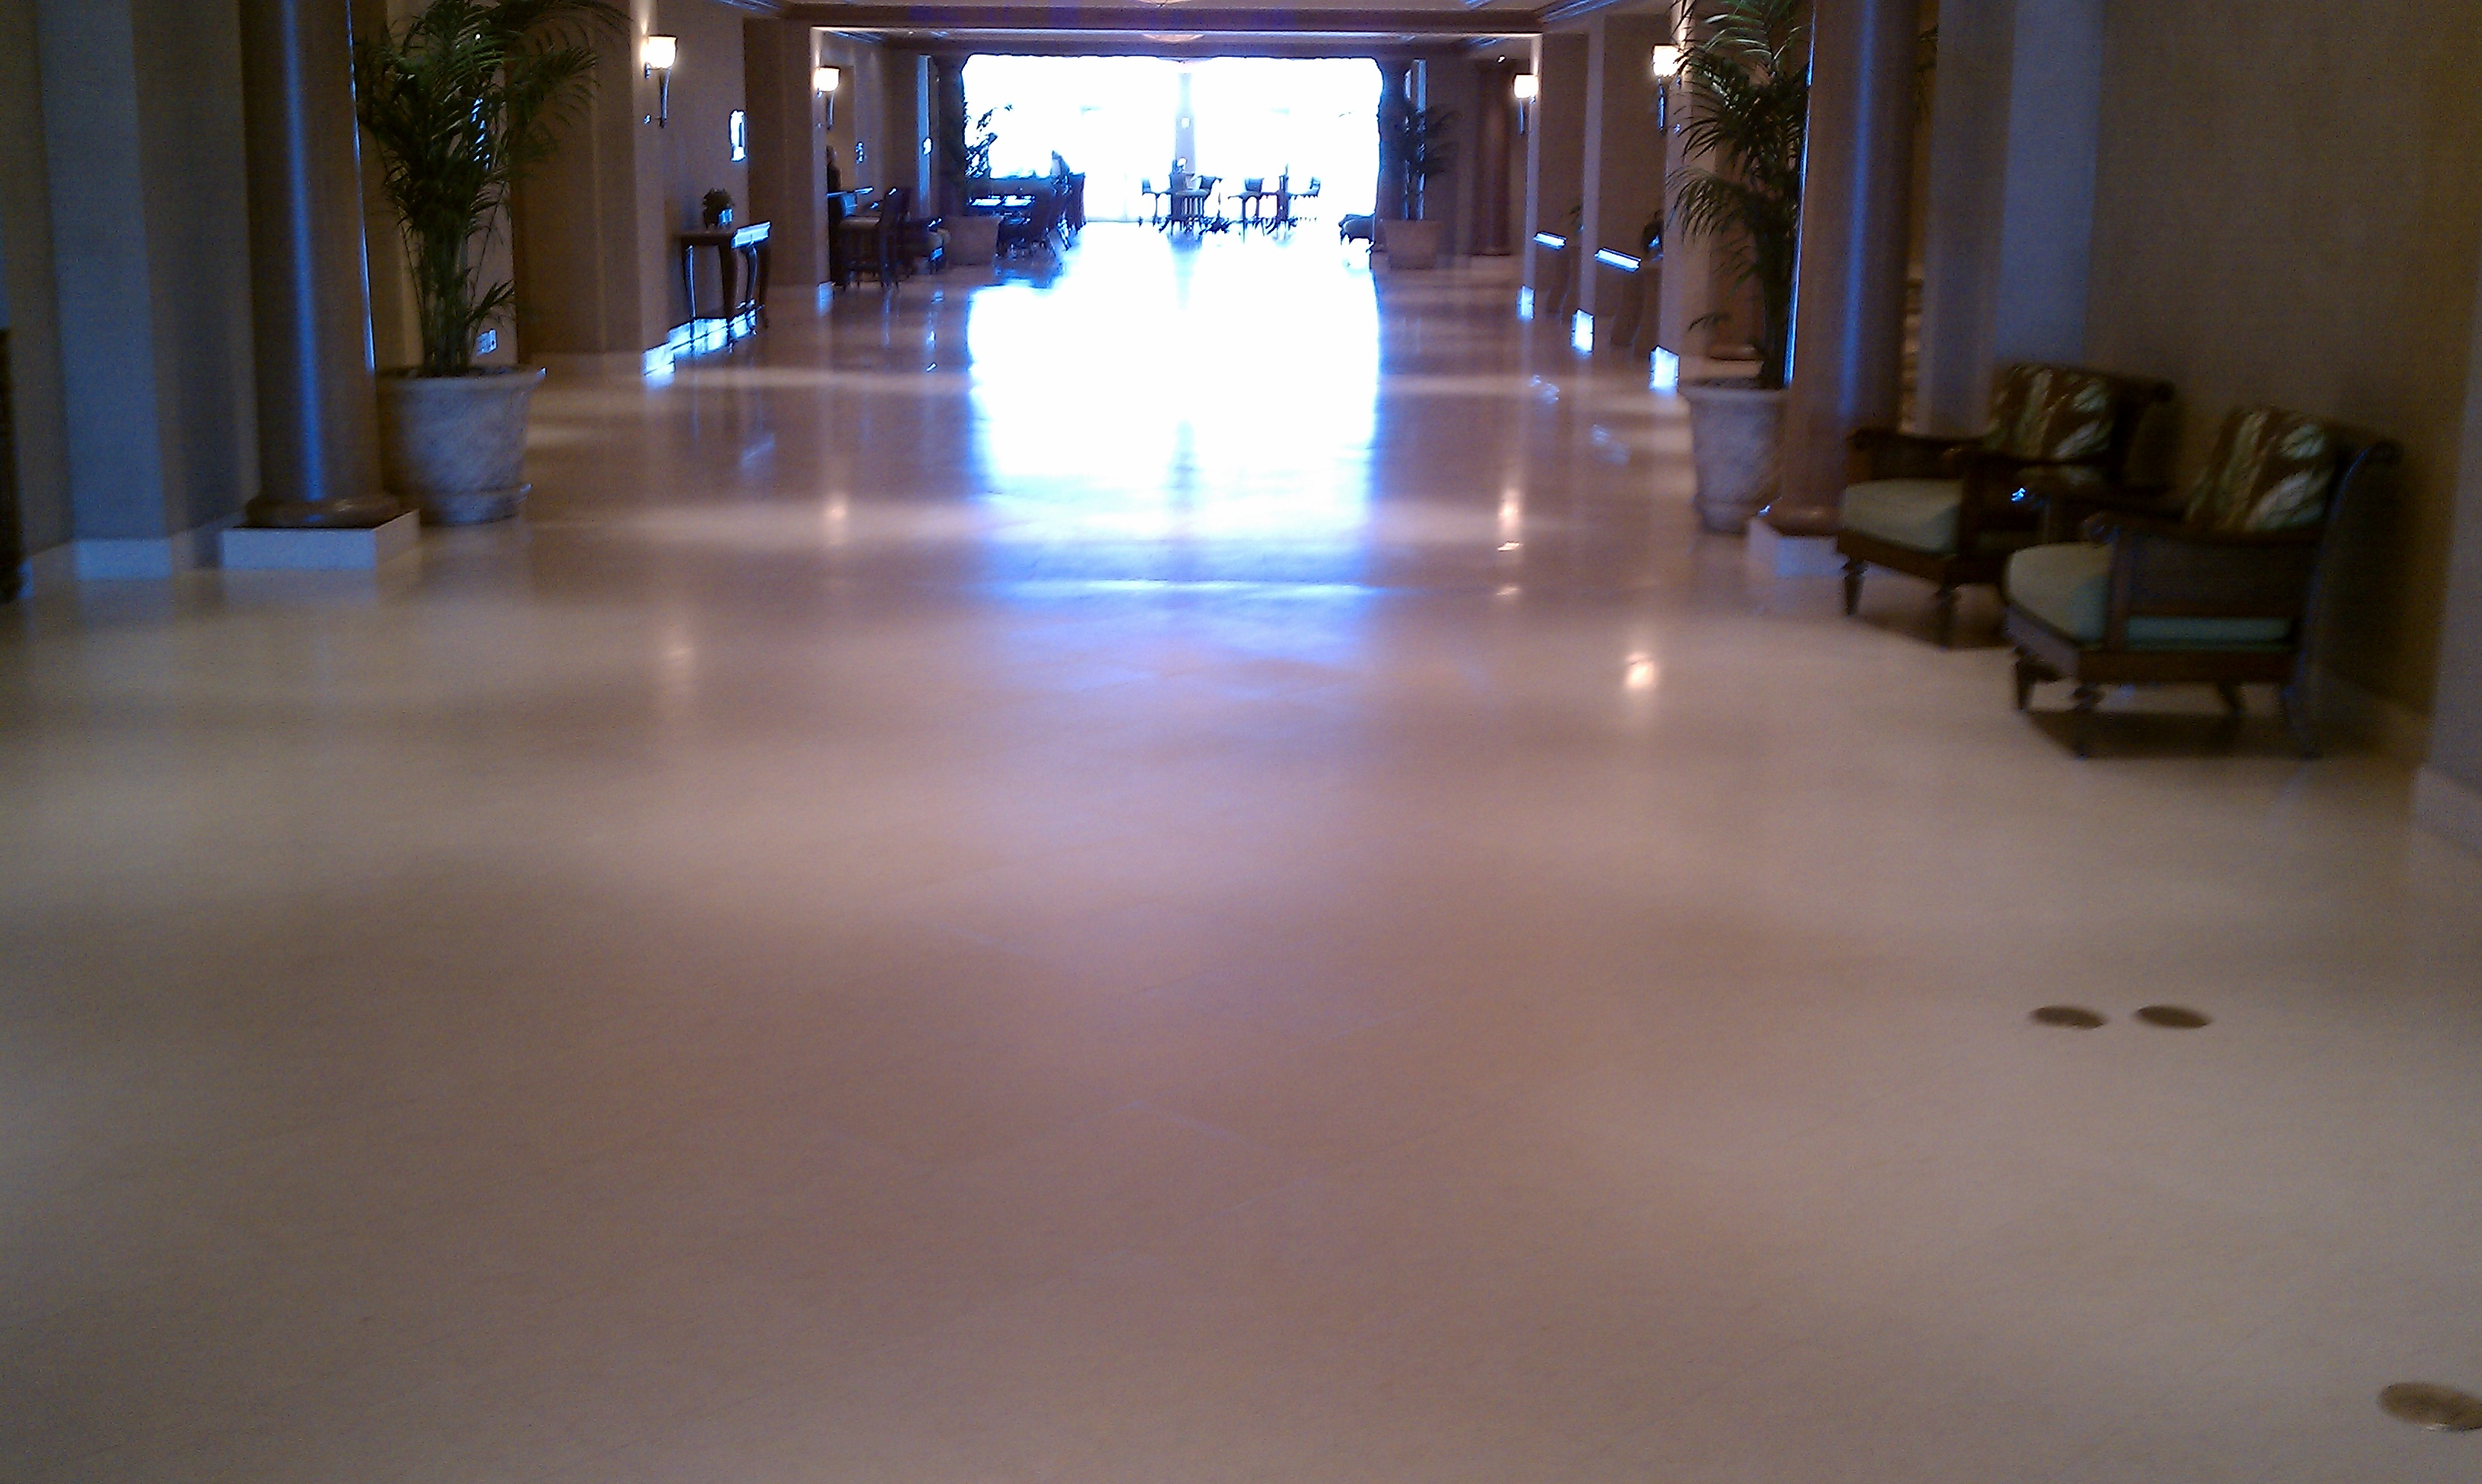 Commercial Tile Cleaning Marvin NC